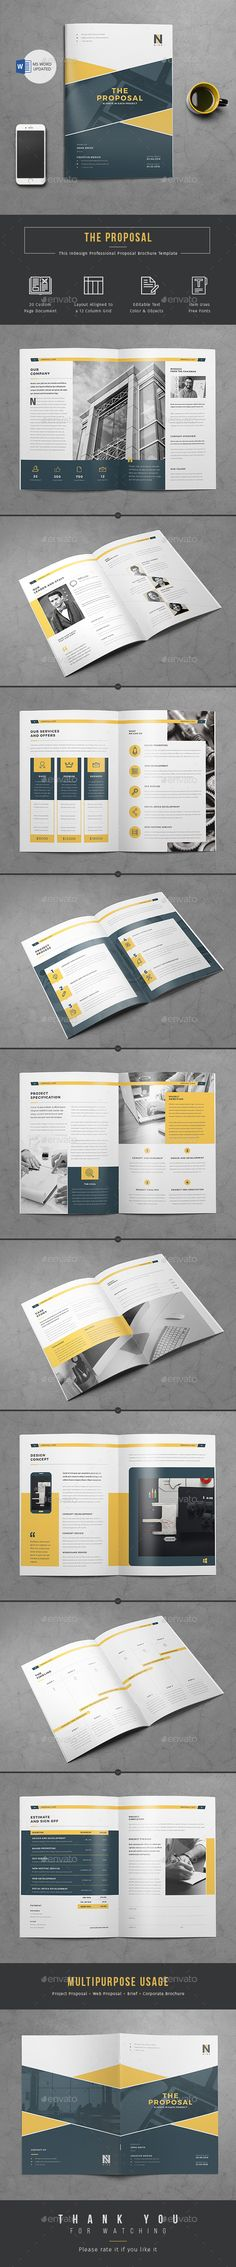 Proposal and Portfolio TemplateMinimal and Professional Proposal - best proposal templates